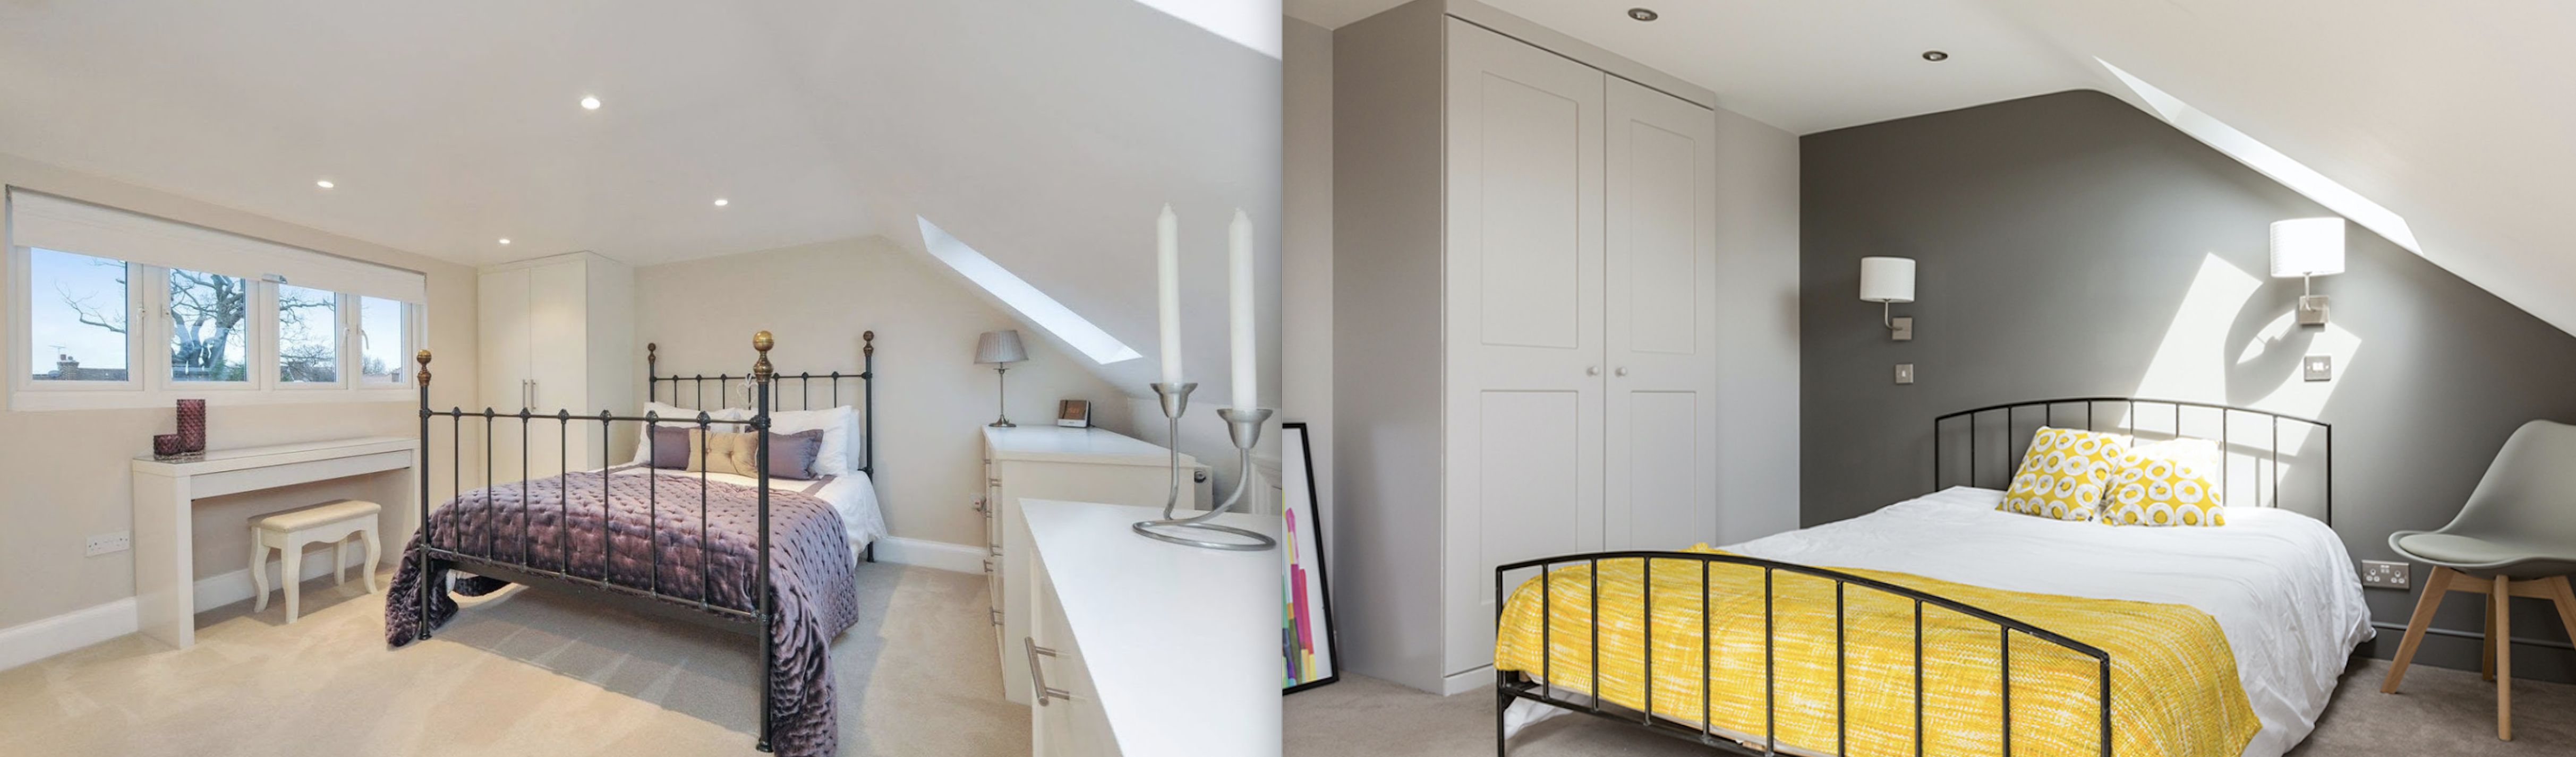 Beautiful Dormer loft conversion in Newton Heath, creating a new master bedroom with private bathroom, walk in wardrobe and stunning new oak staircase with Velux polyurethane SK06 GPU windows.